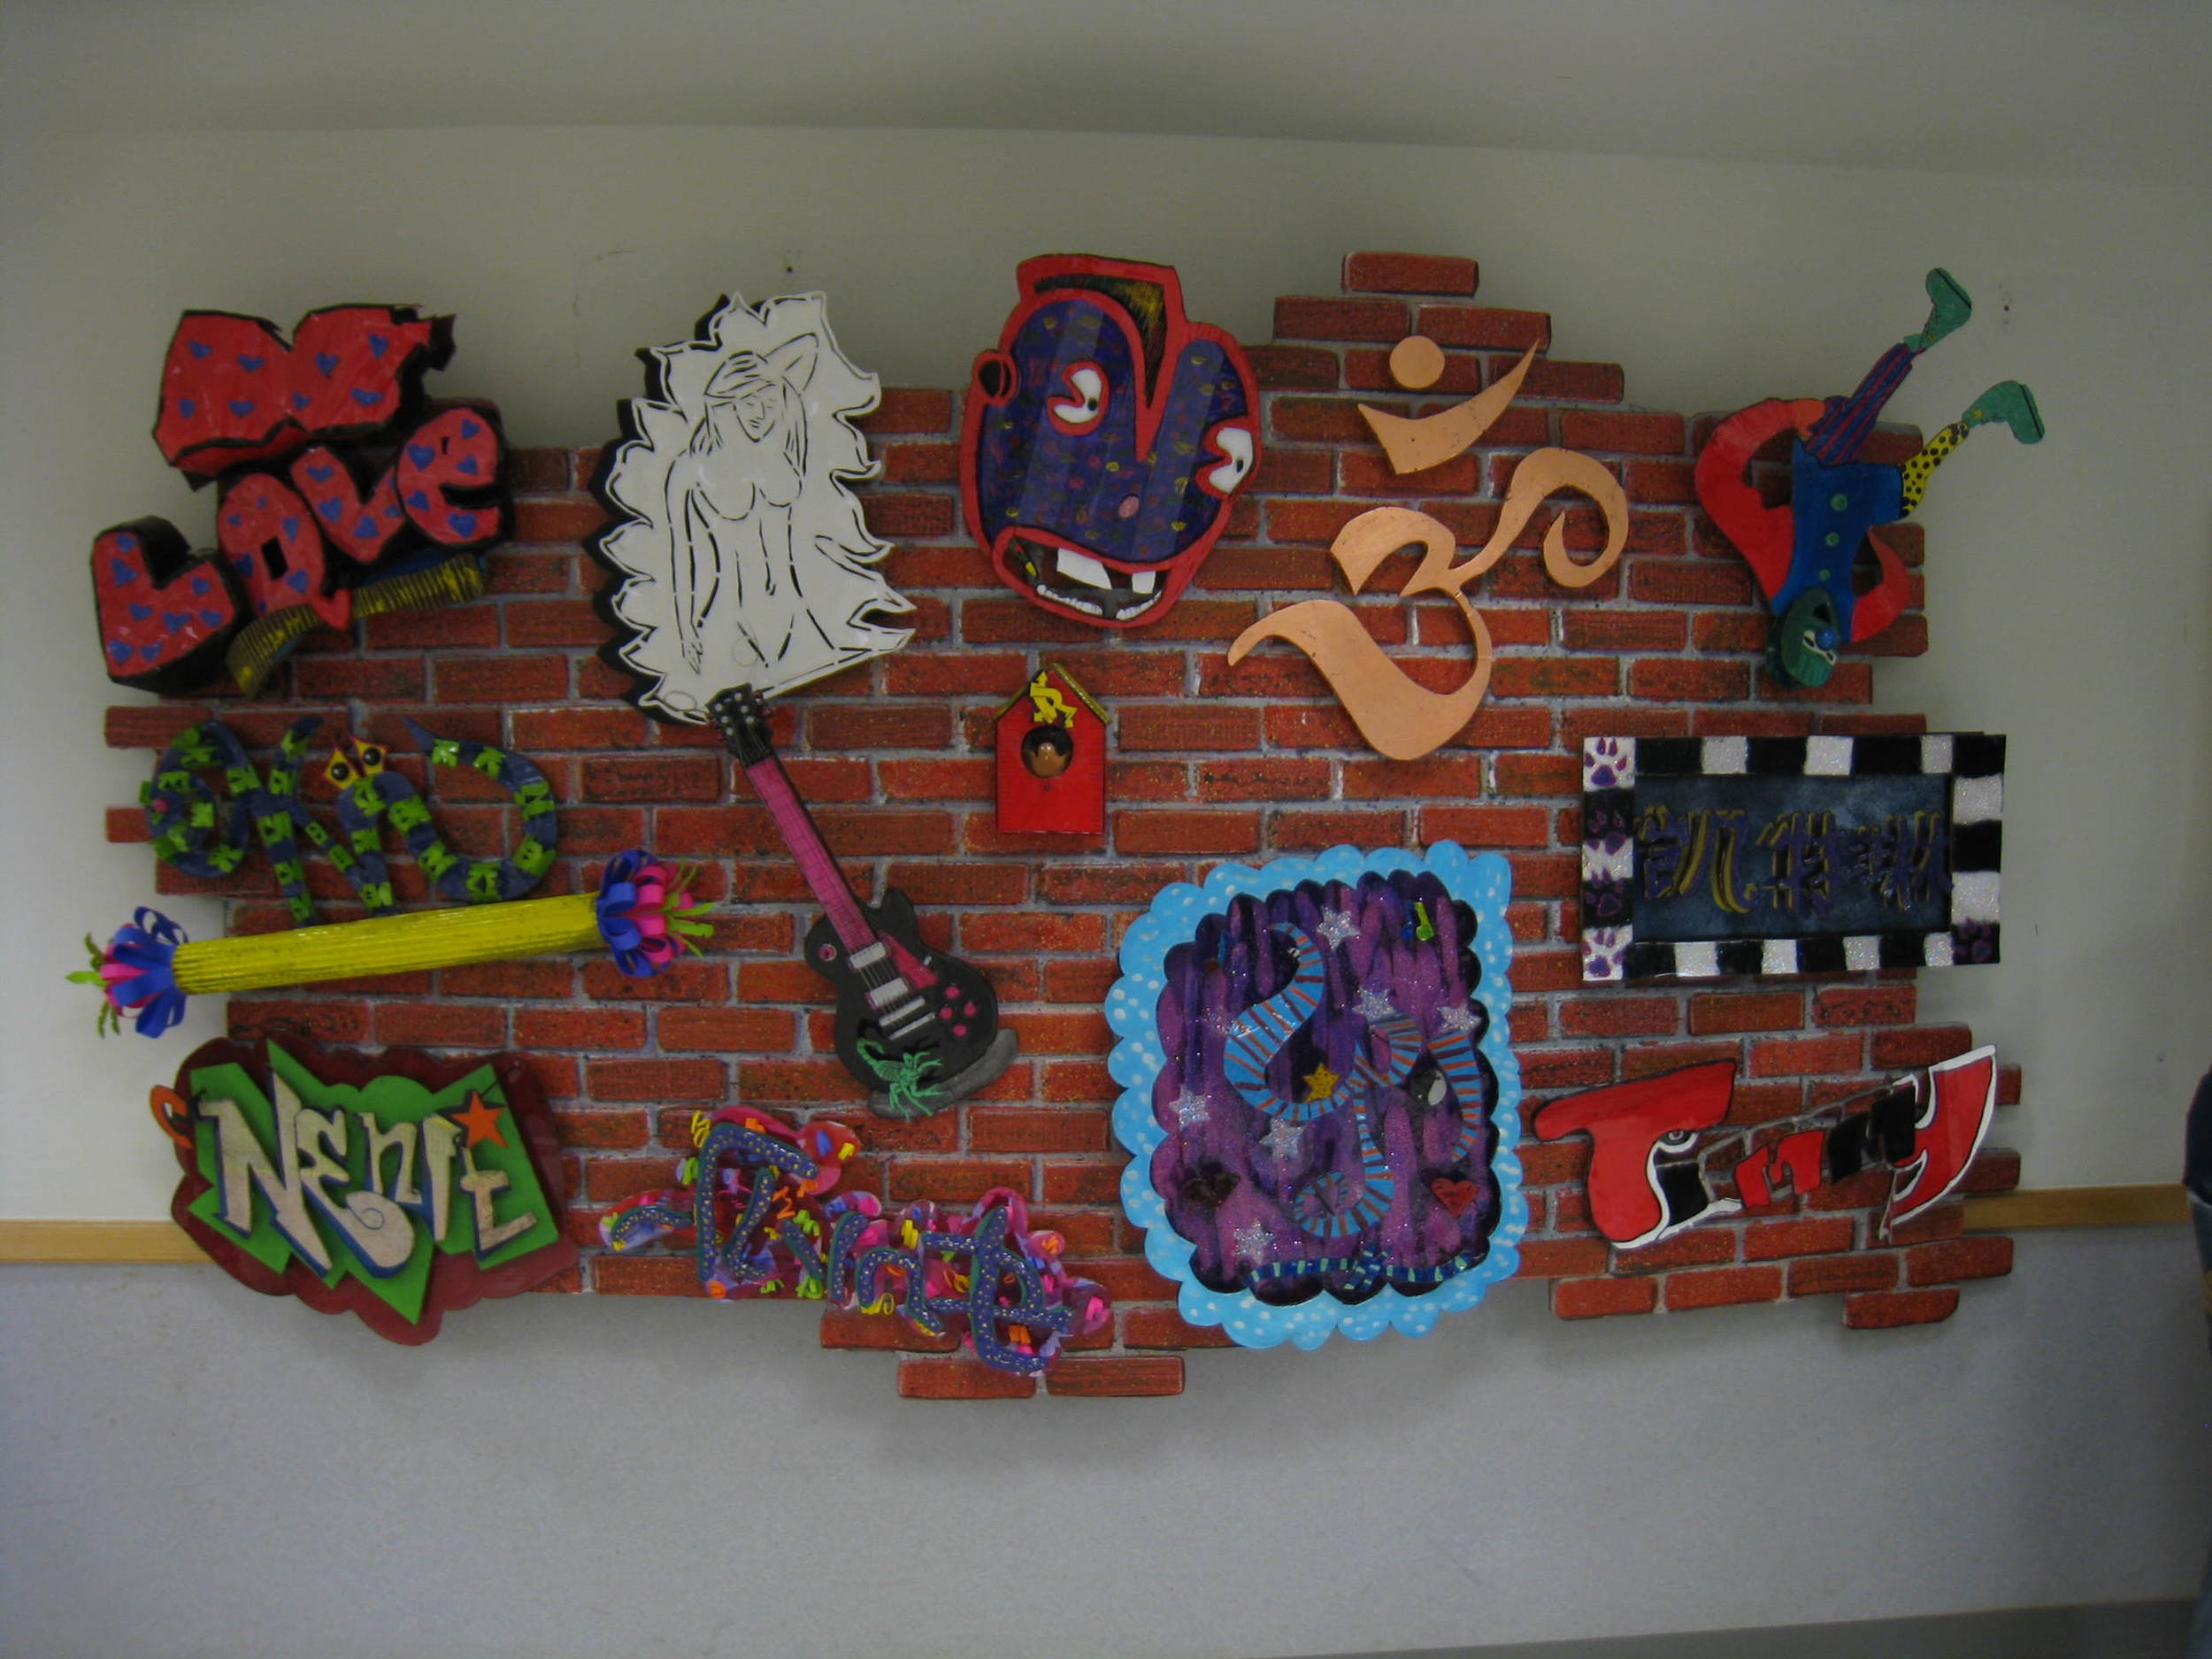 South Brooklyn Community High School Tag Wall